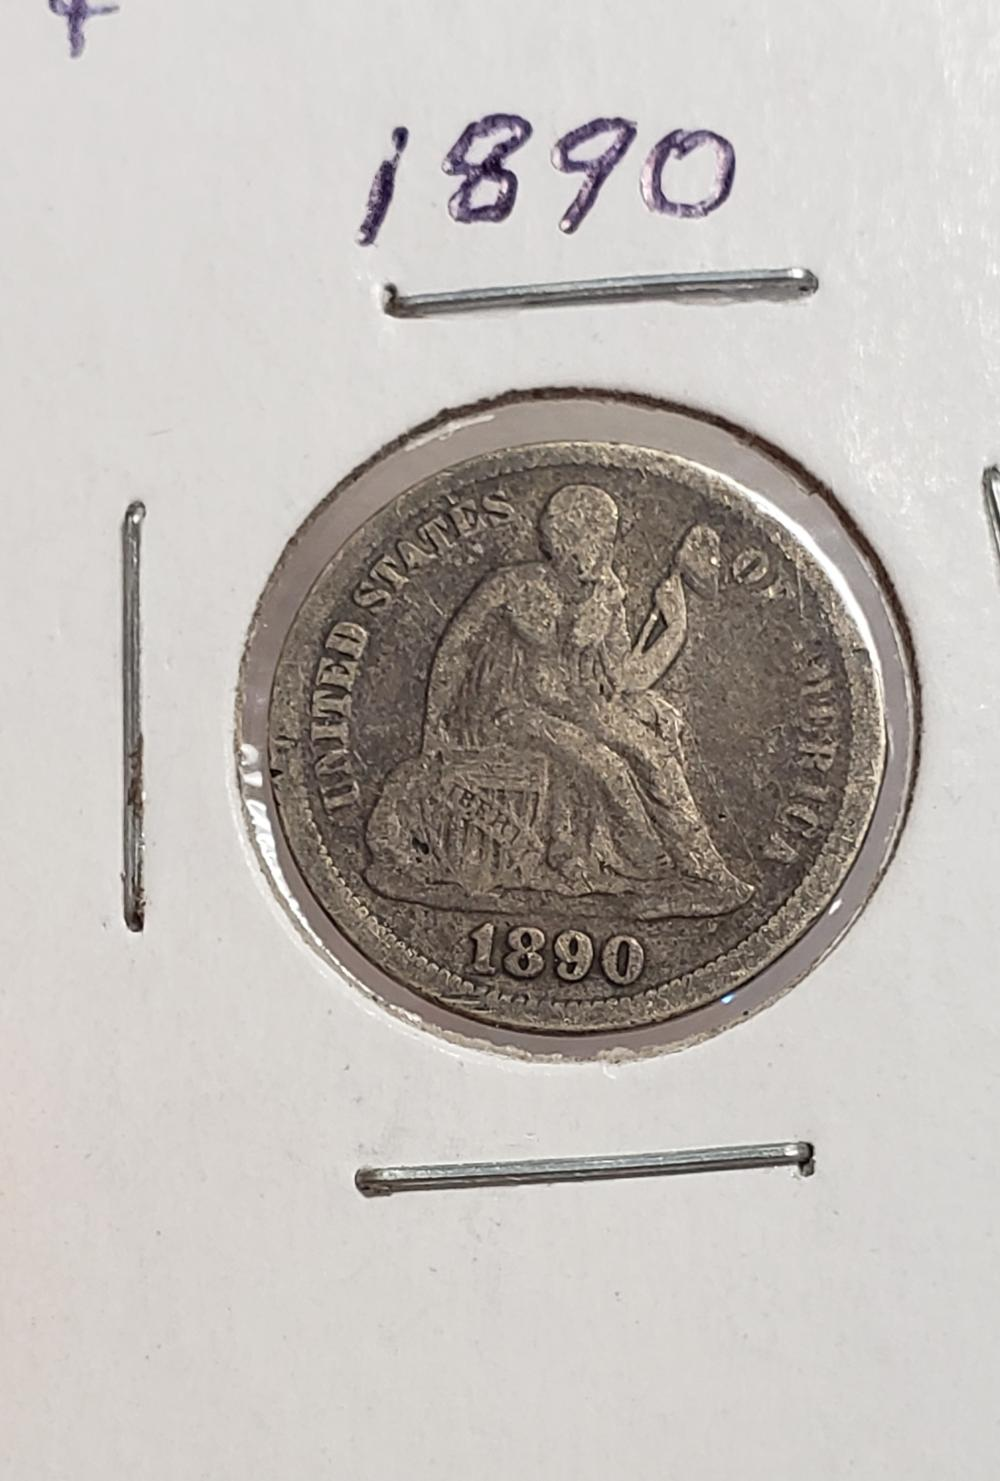 1890 Seated Liberty Dime 10 cents silver